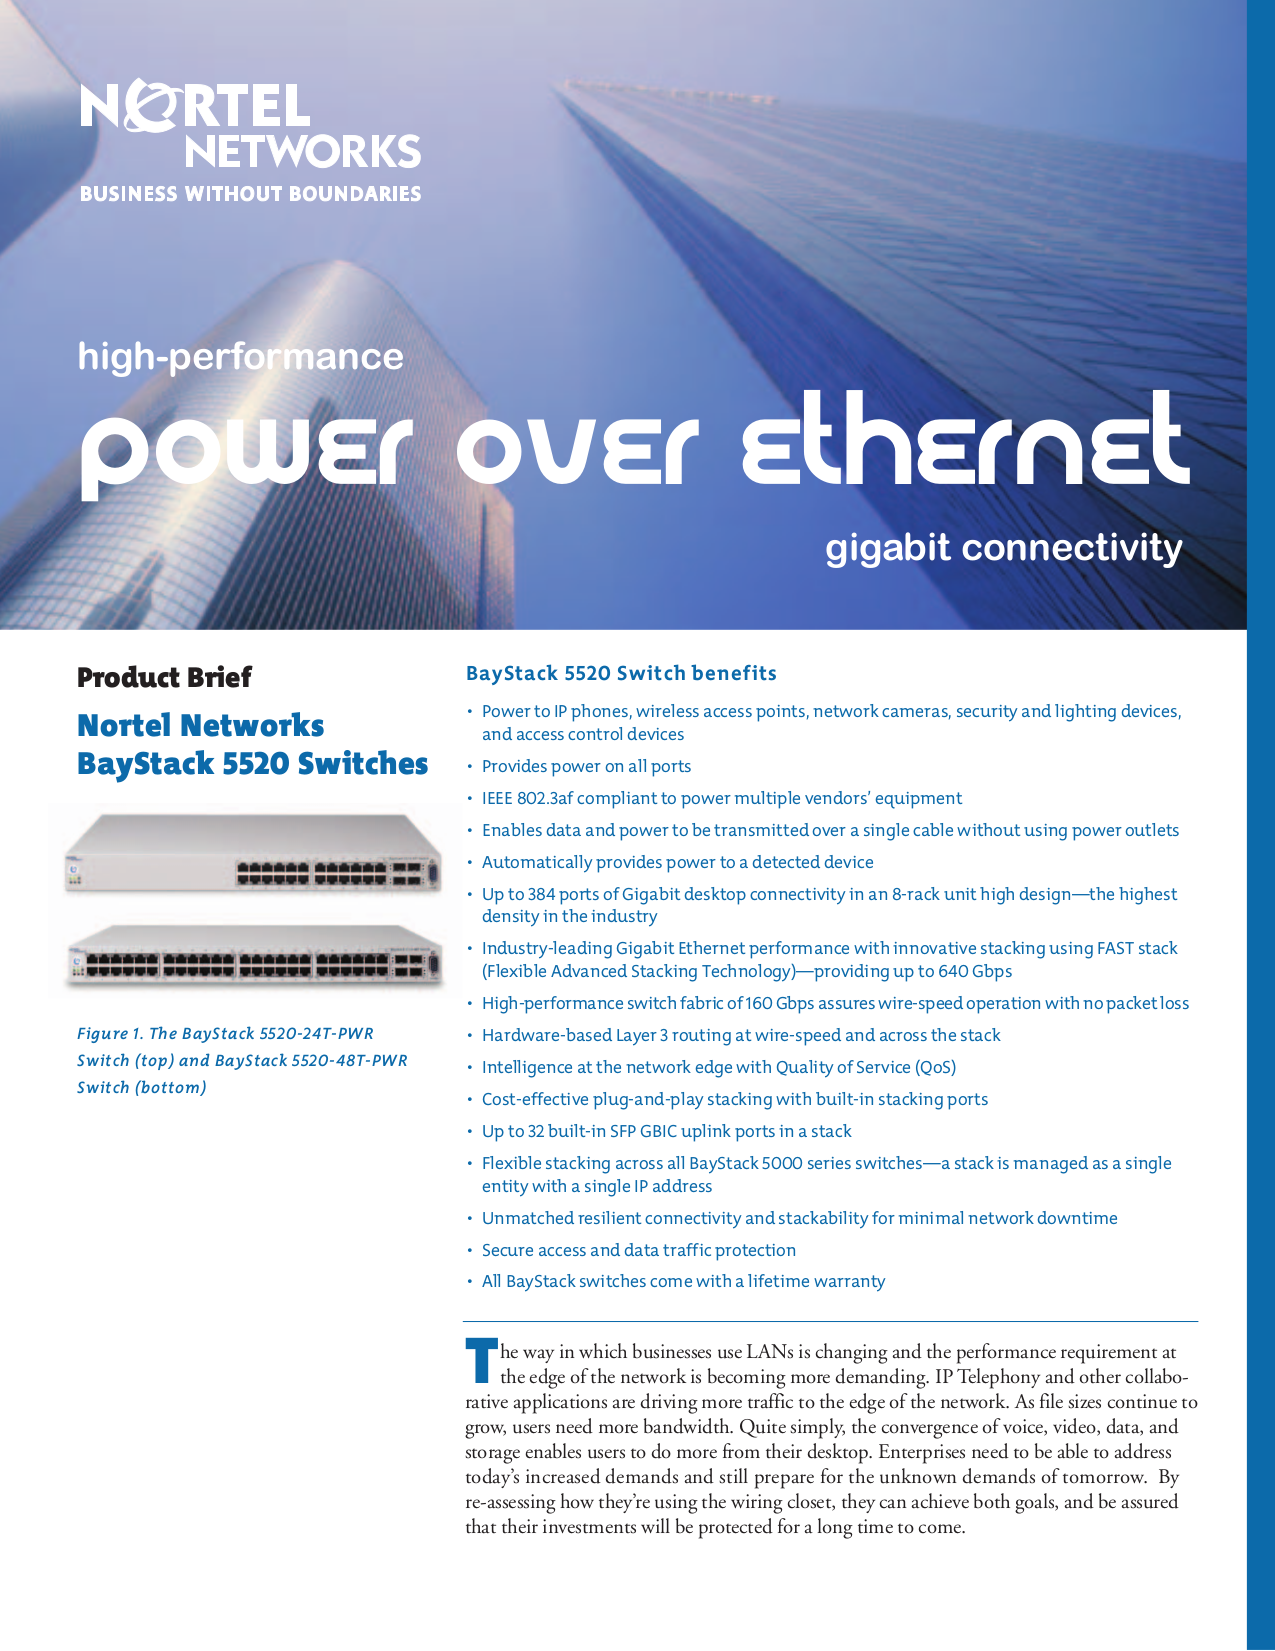 pdf for Nortel Switch 120-48T PWR manual